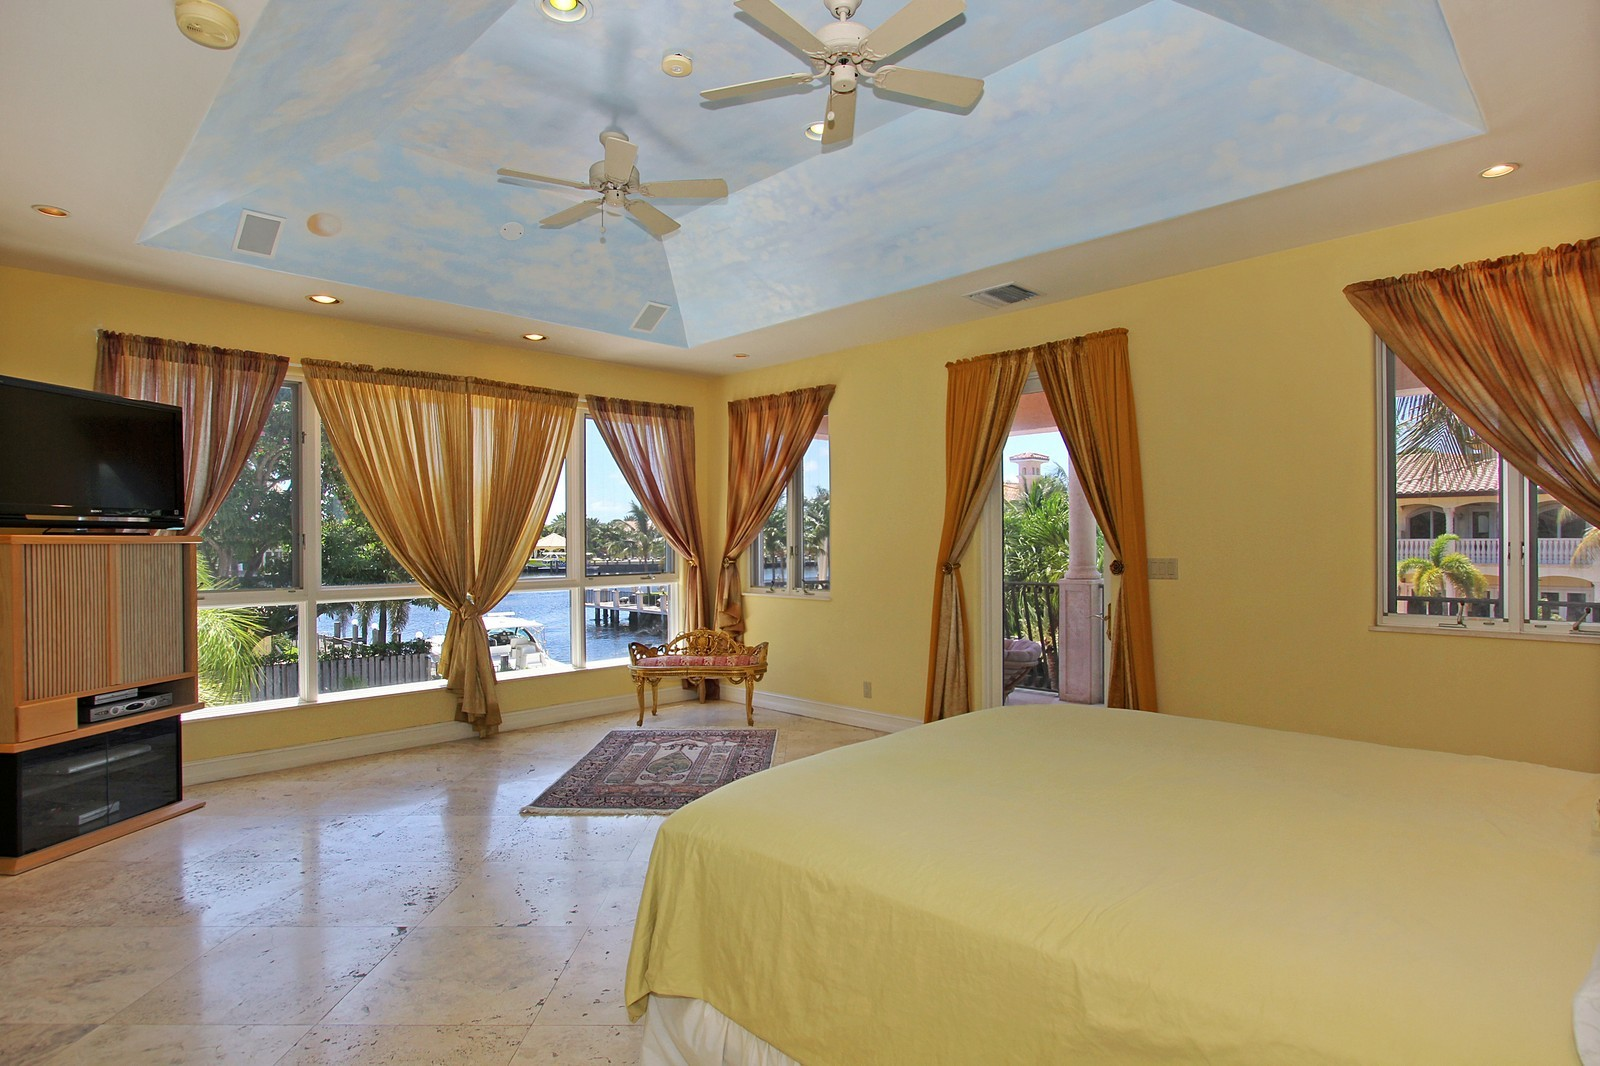 Real Estate Photography - 3310 NE 58th St, Fort Lauderdale, FL, 33308 - Master Bedroom